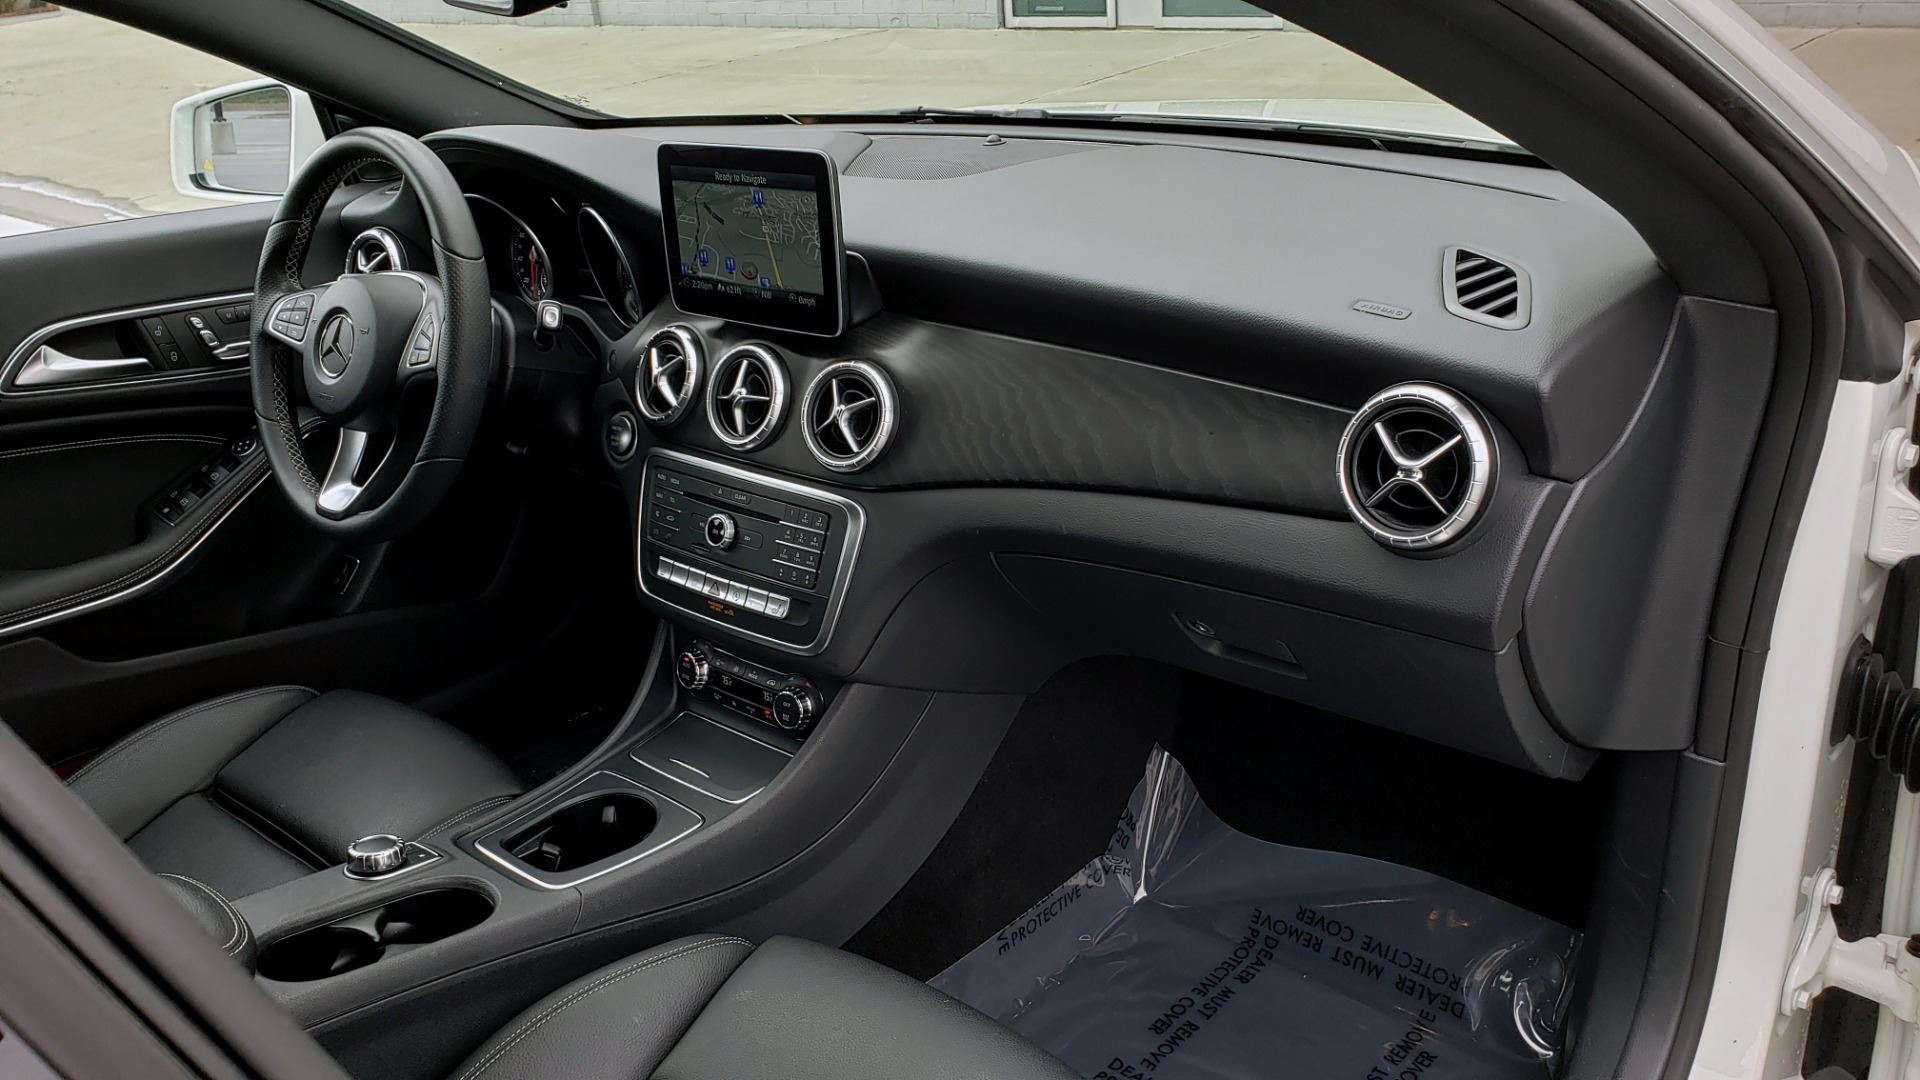 Used 2018 Mercedes-Benz CLA 250 PREMIUM / NAV / PANO-ROOF / APPLE CARPLAY / REARVIEW for sale $23,995 at Formula Imports in Charlotte NC 28227 67